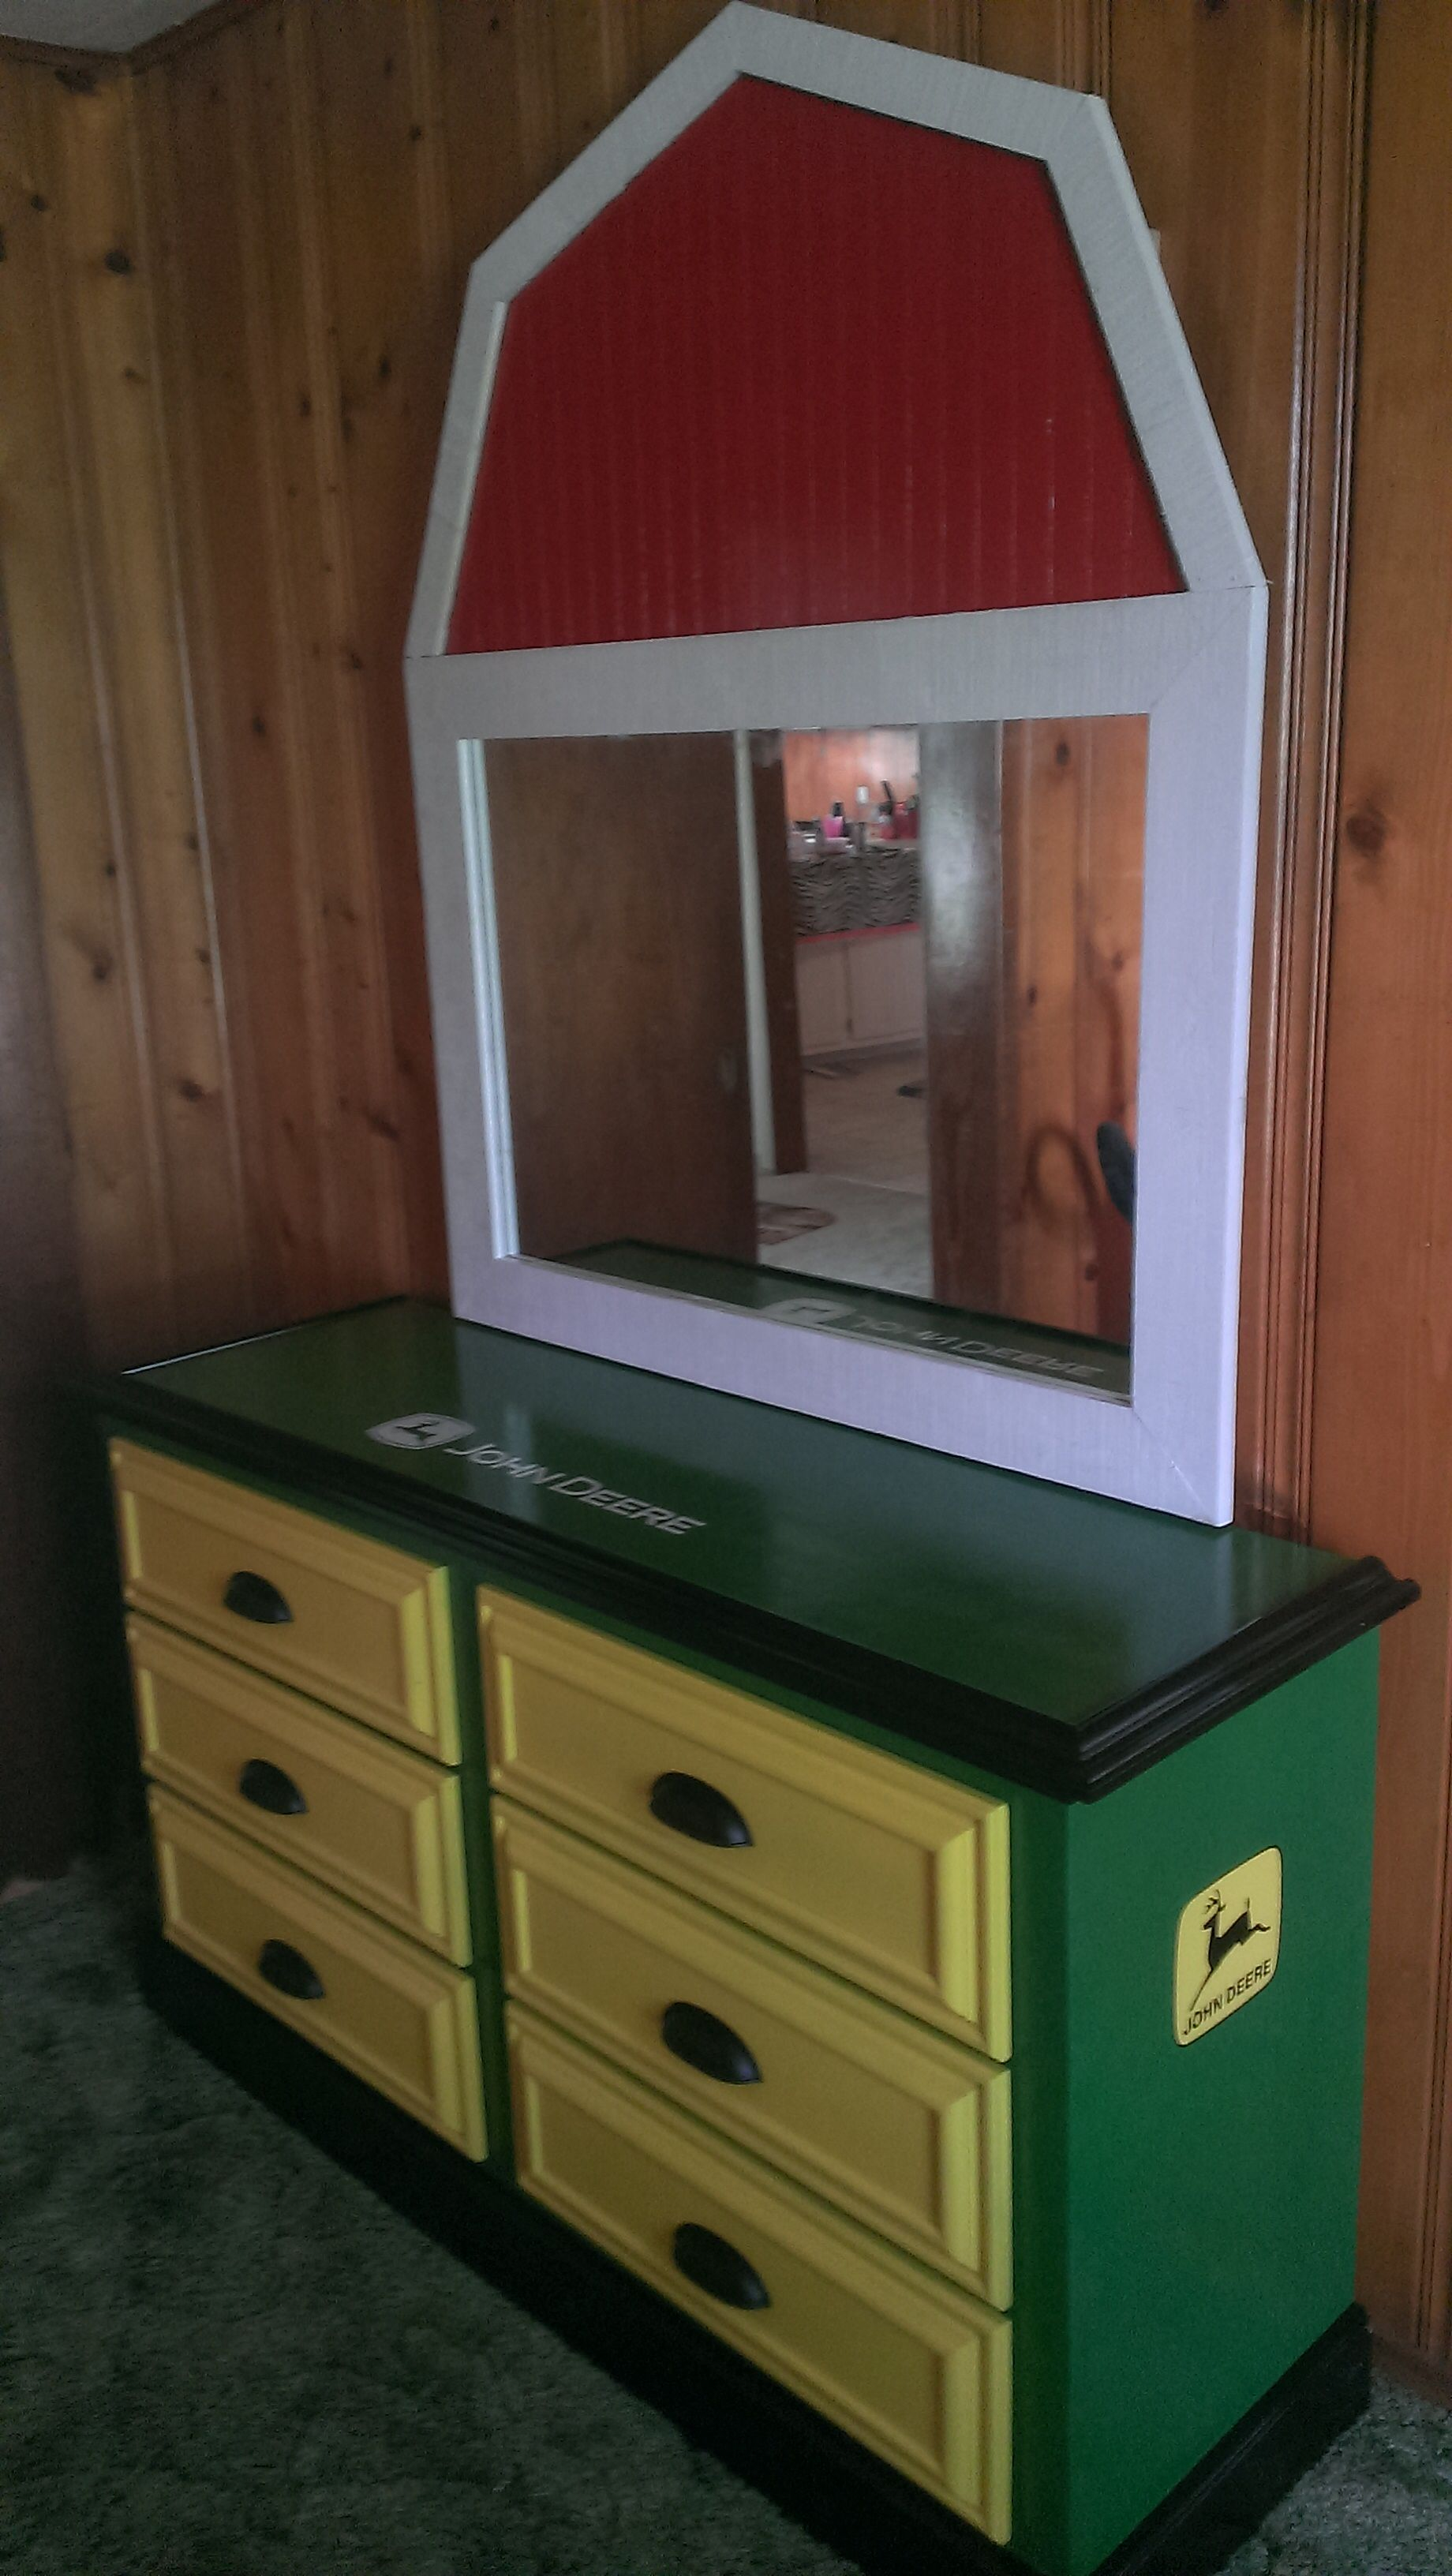 John Deere Dresser Side View Bedroom furniture